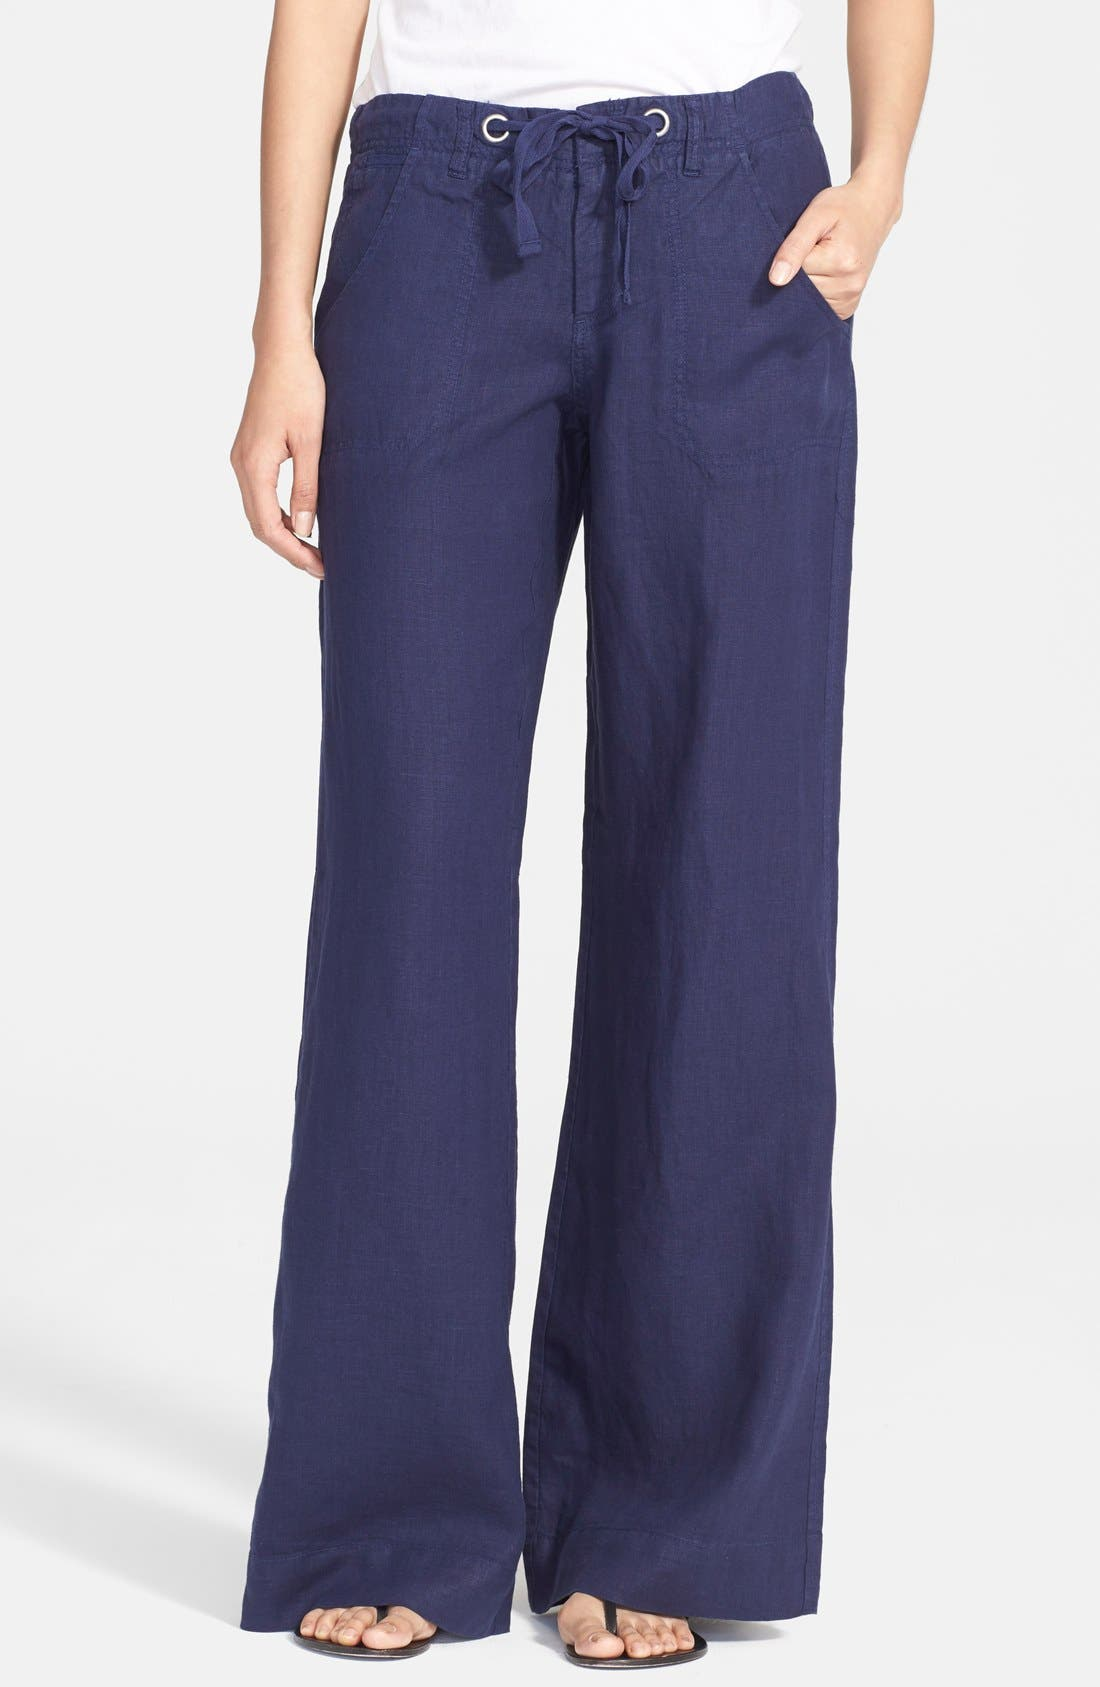 Joie Wide Leg Linen Pants